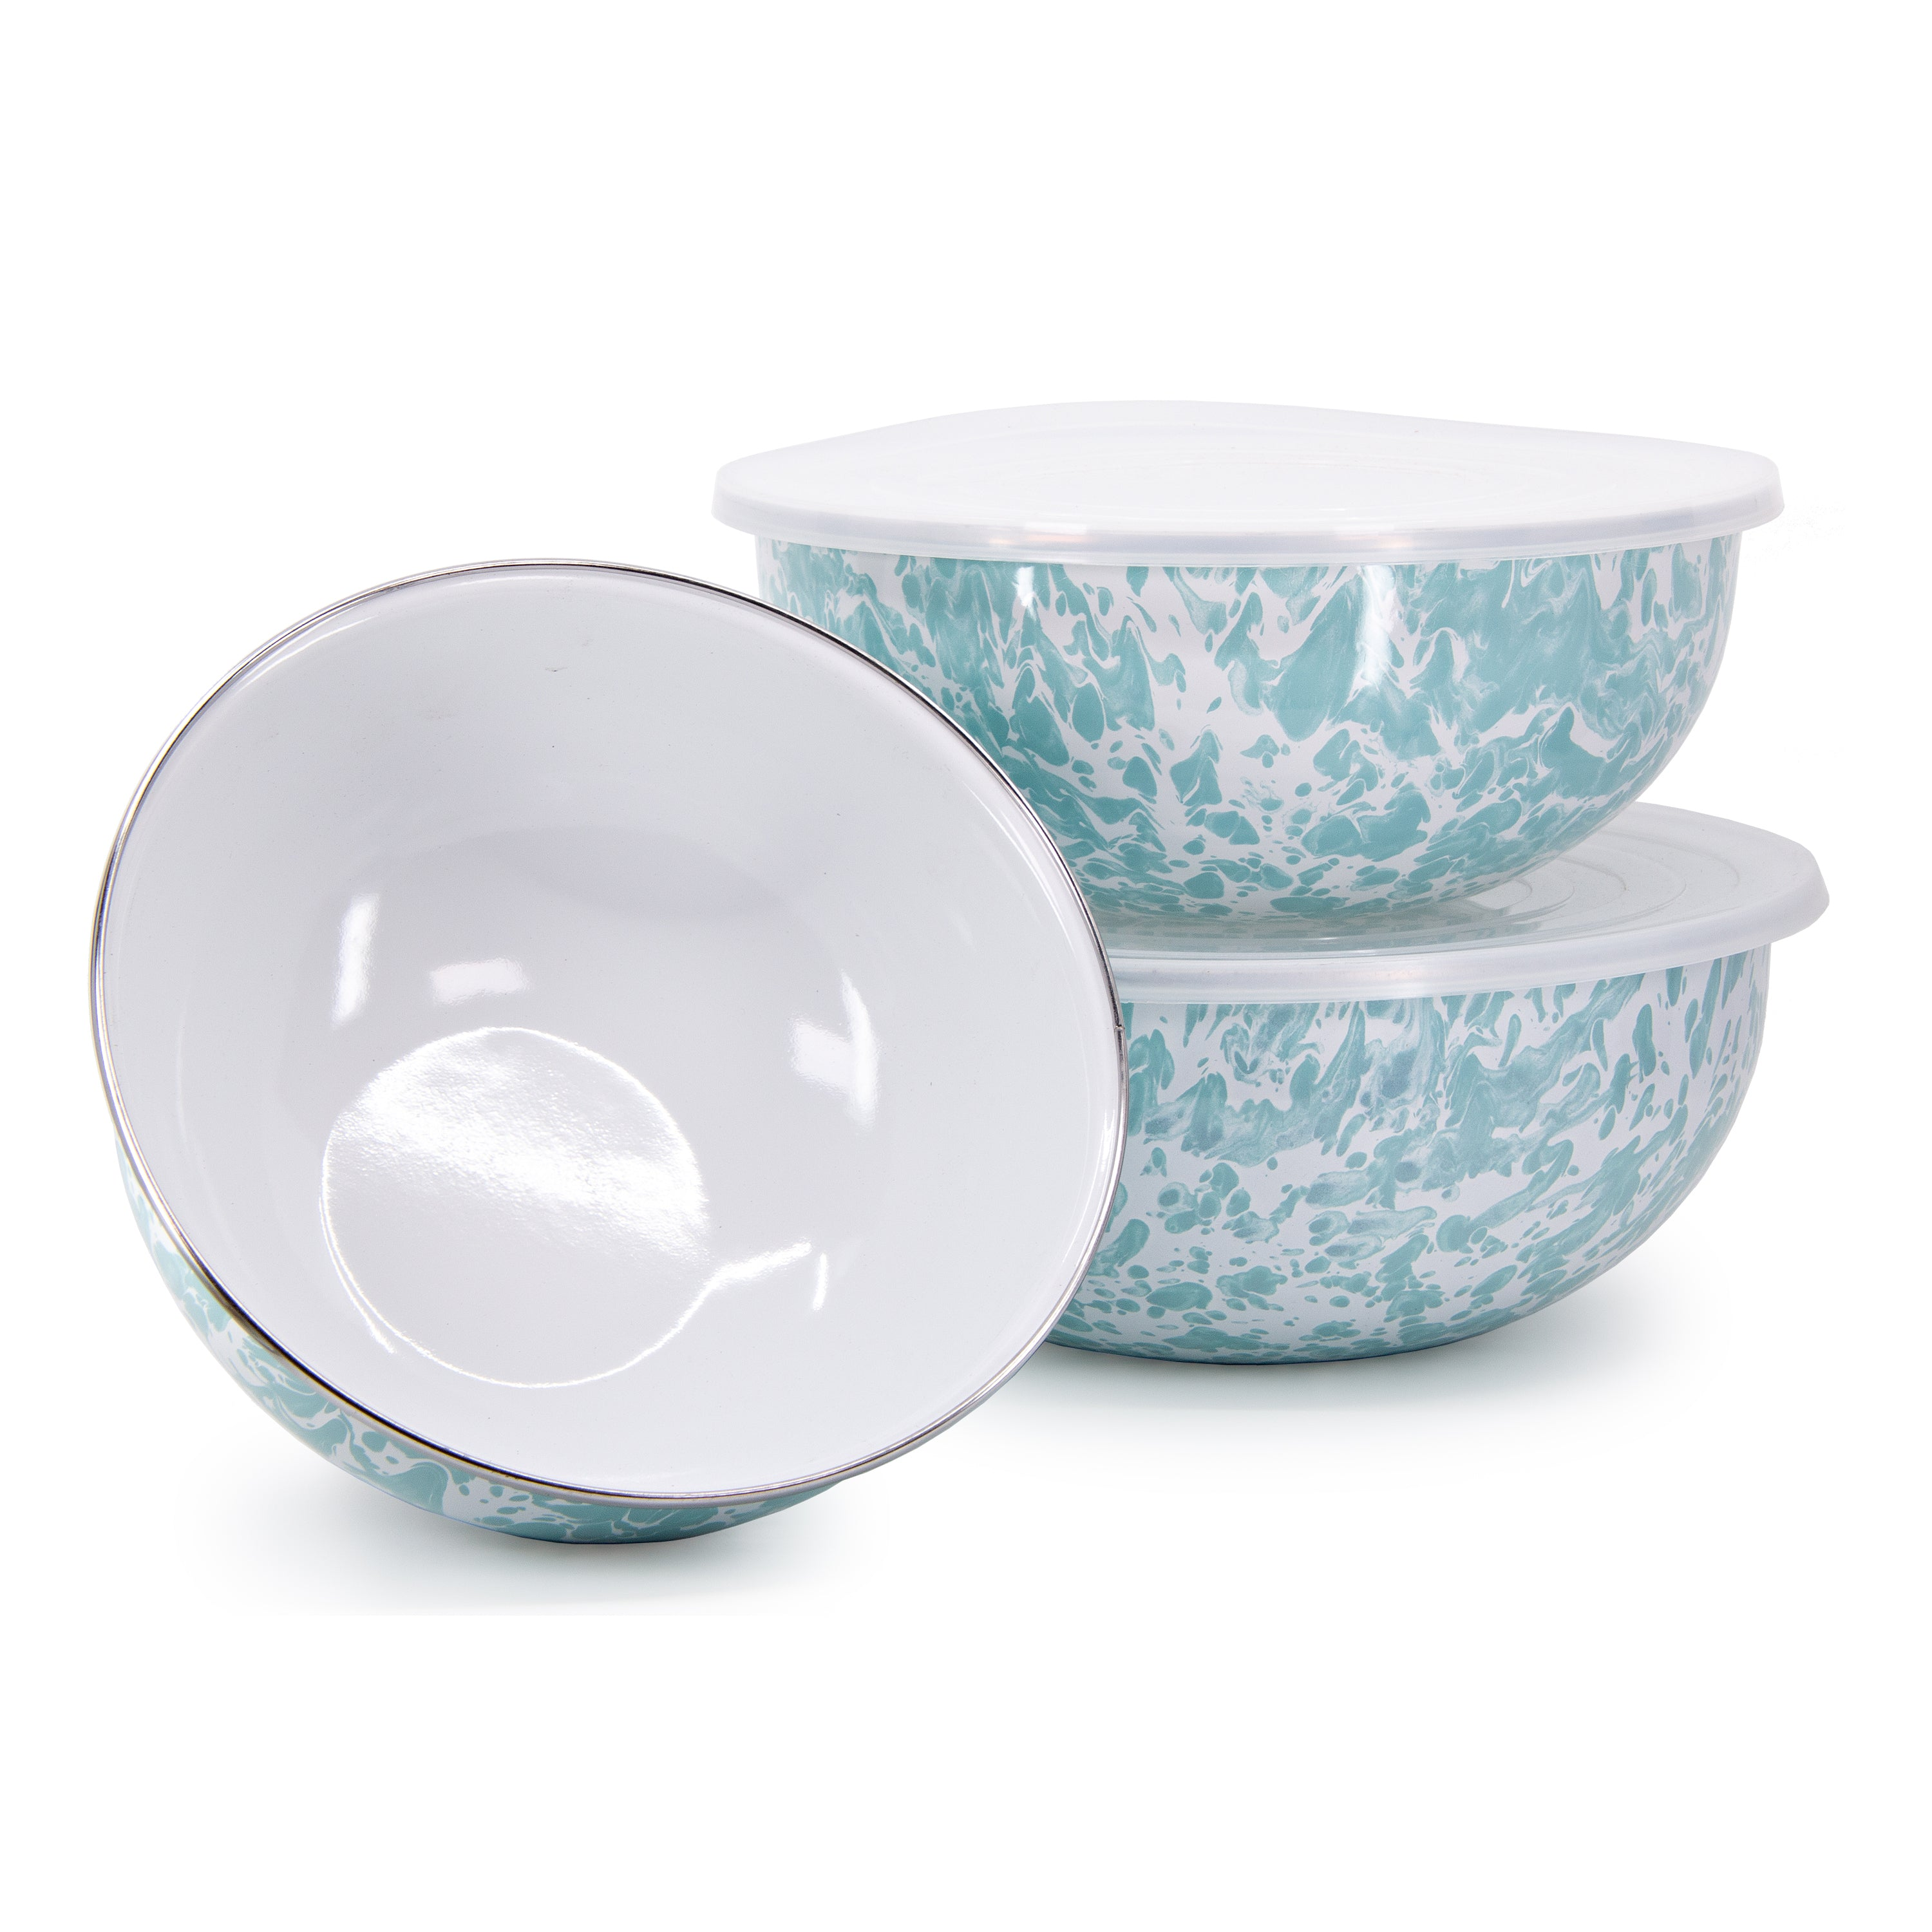 GL54 - Sea Glass Mixing Bowls Image 1